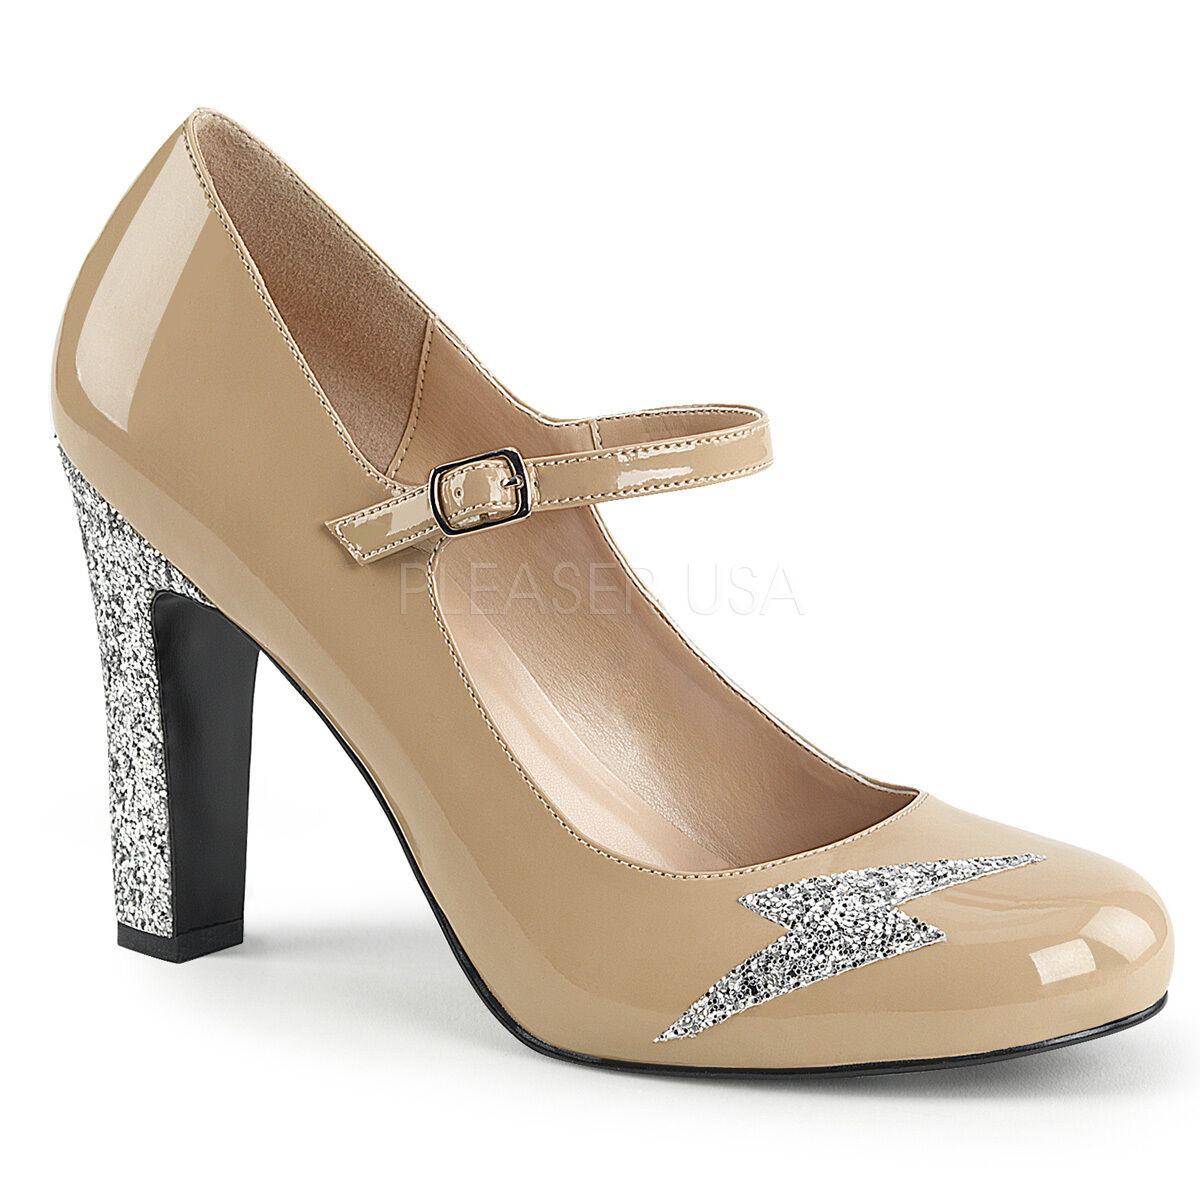 Sexy 4  High Heel Cream Mary Jane Pumps shoes Lightning Bolt Silver Glitters